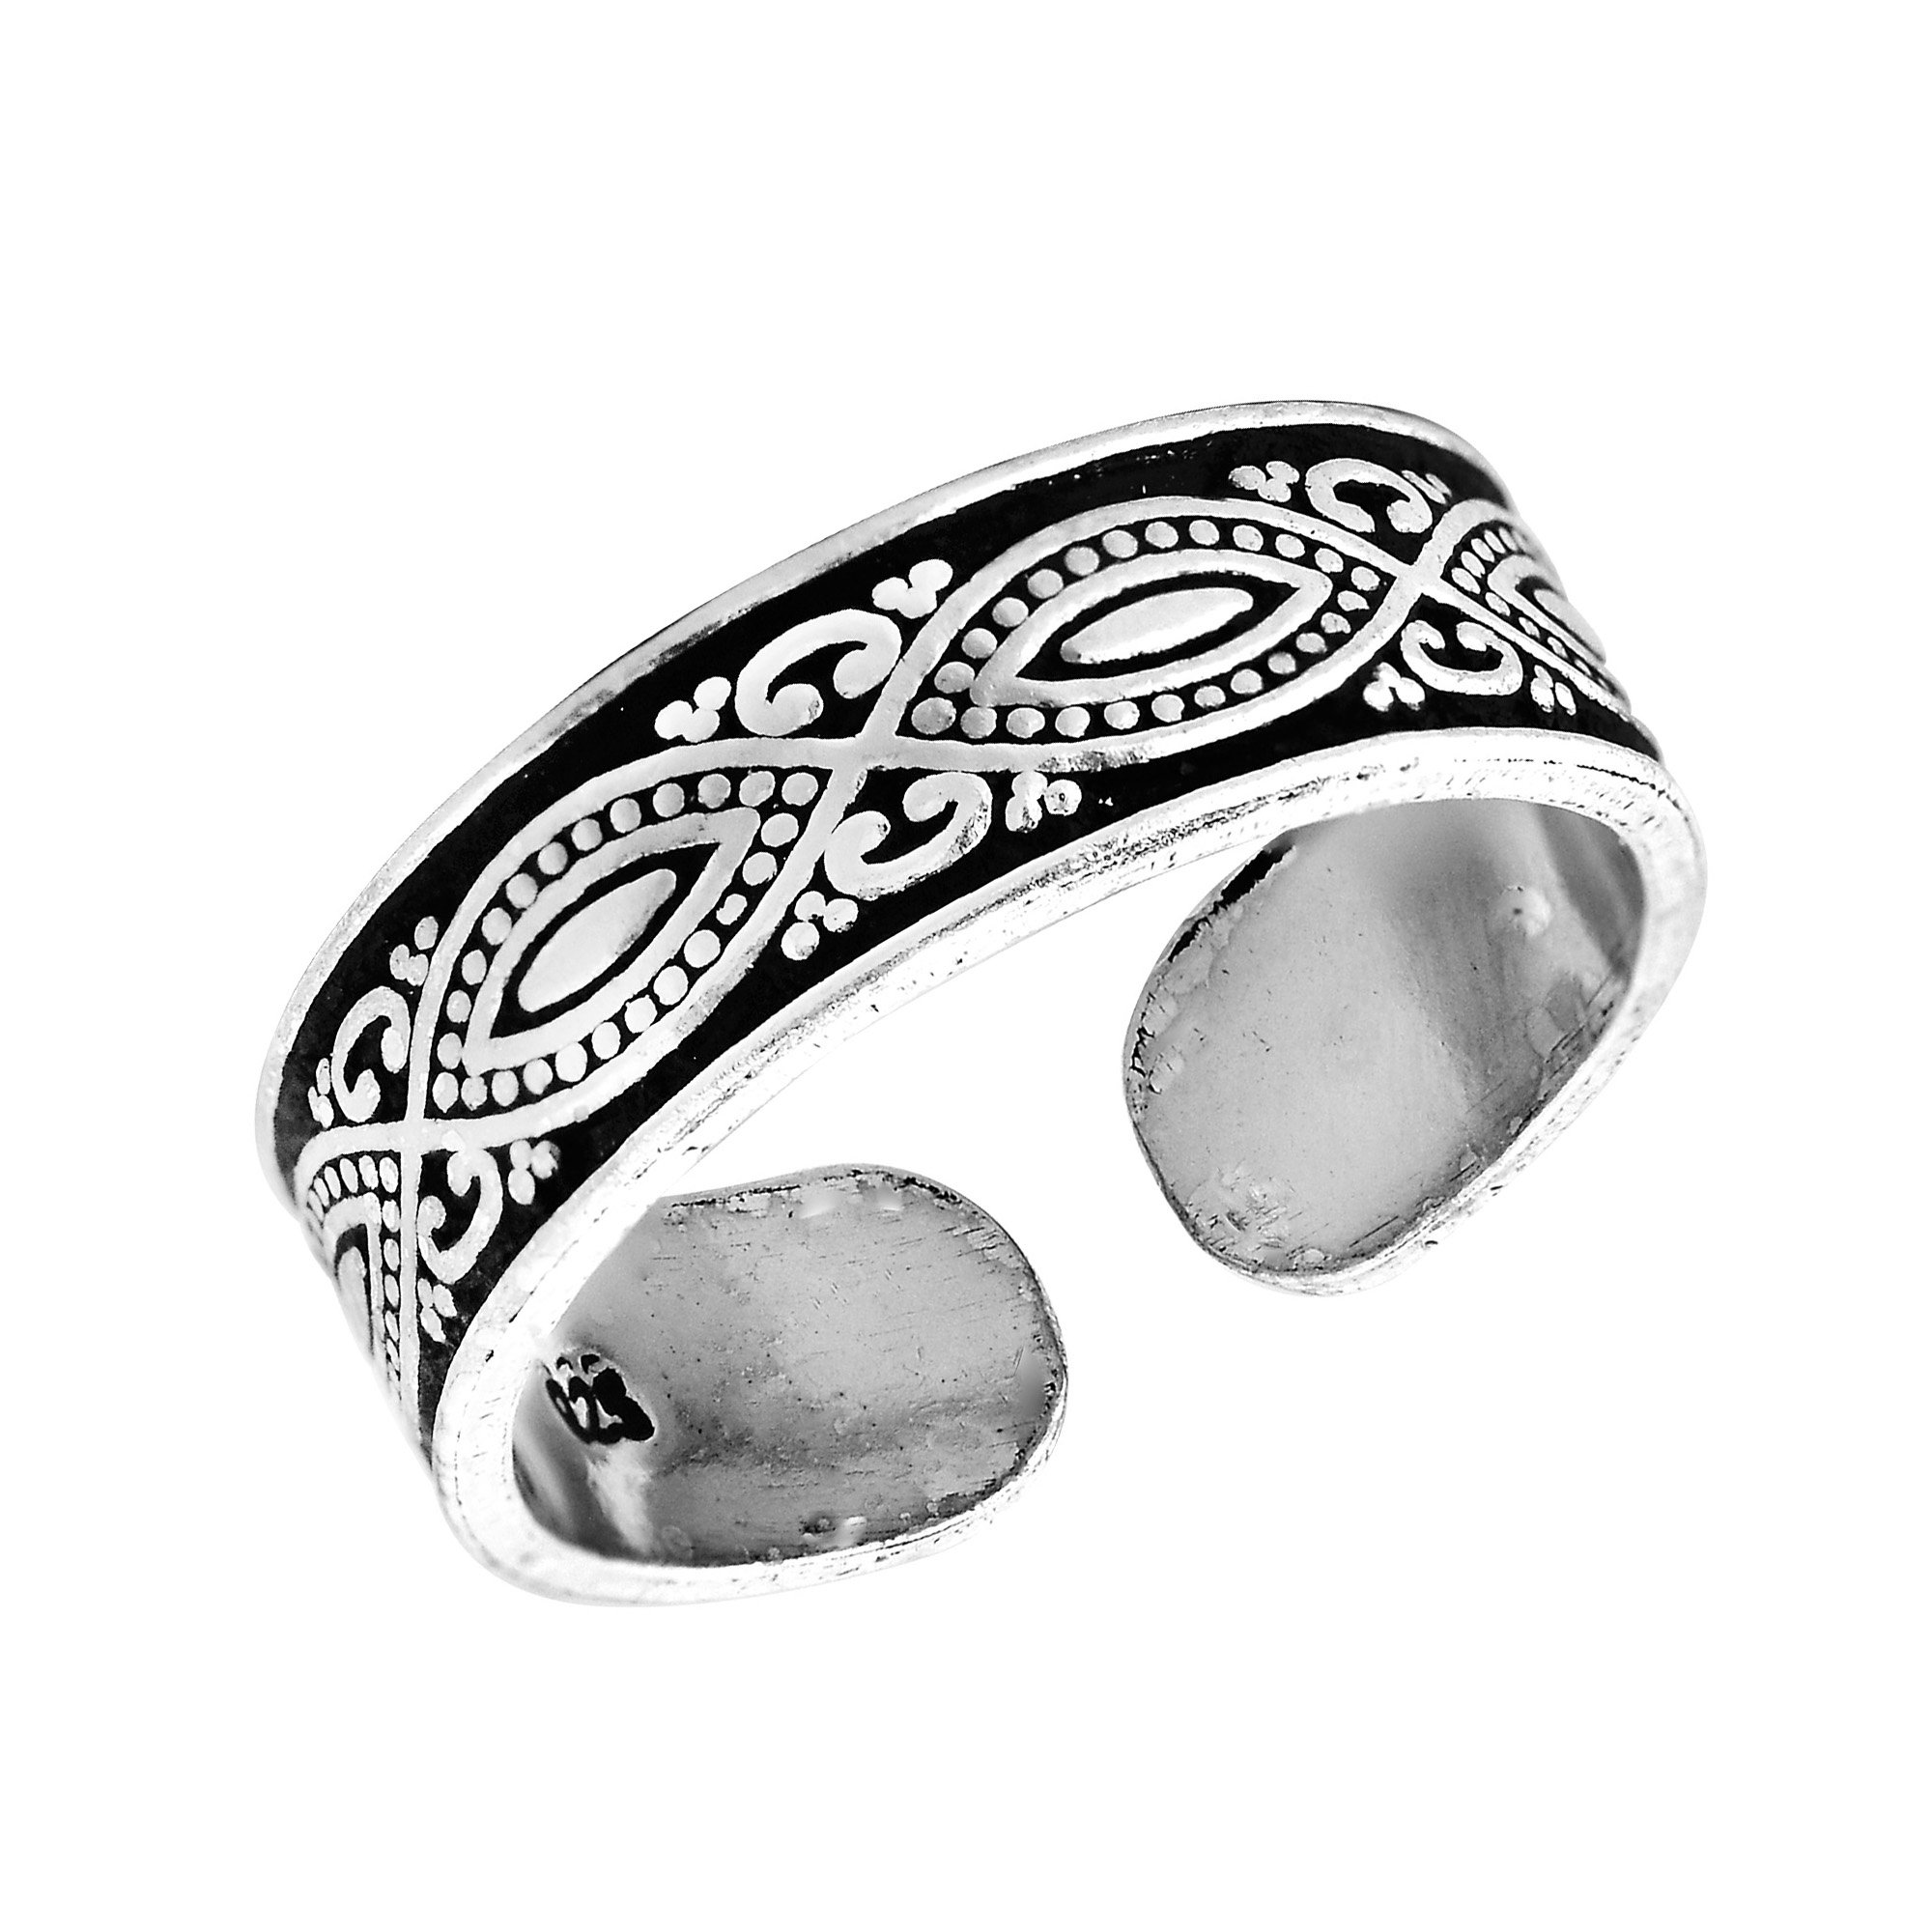 Decorative Balinese Marquise Design .925 Sterling Silver Toe Ring or Pinky Ring by AeraVida